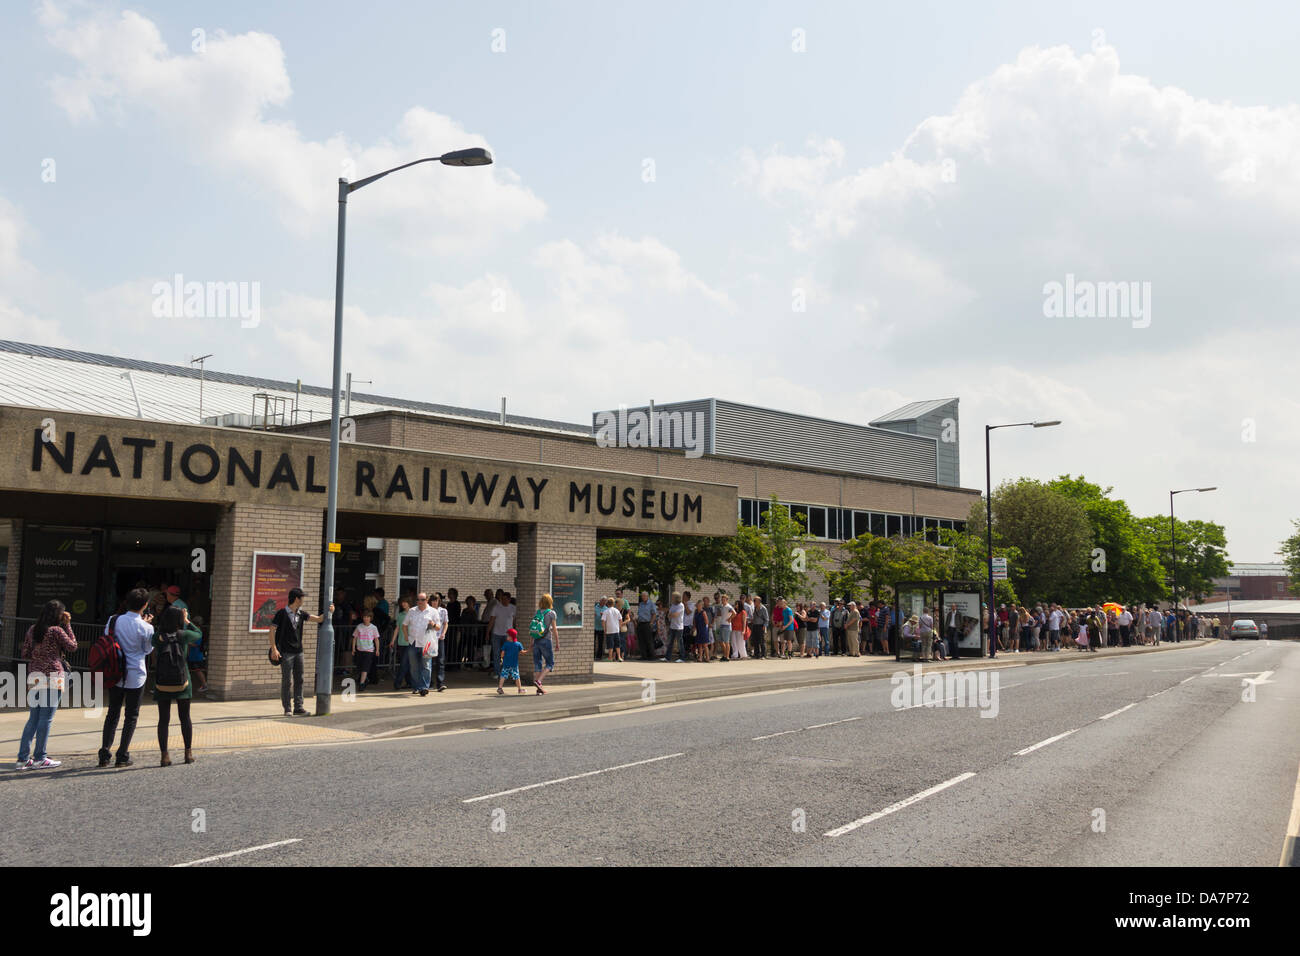 York, UK. 6th July, 2013. Railway enthusiasts and people just generally interested queing for up to a hour to enter - Stock Image